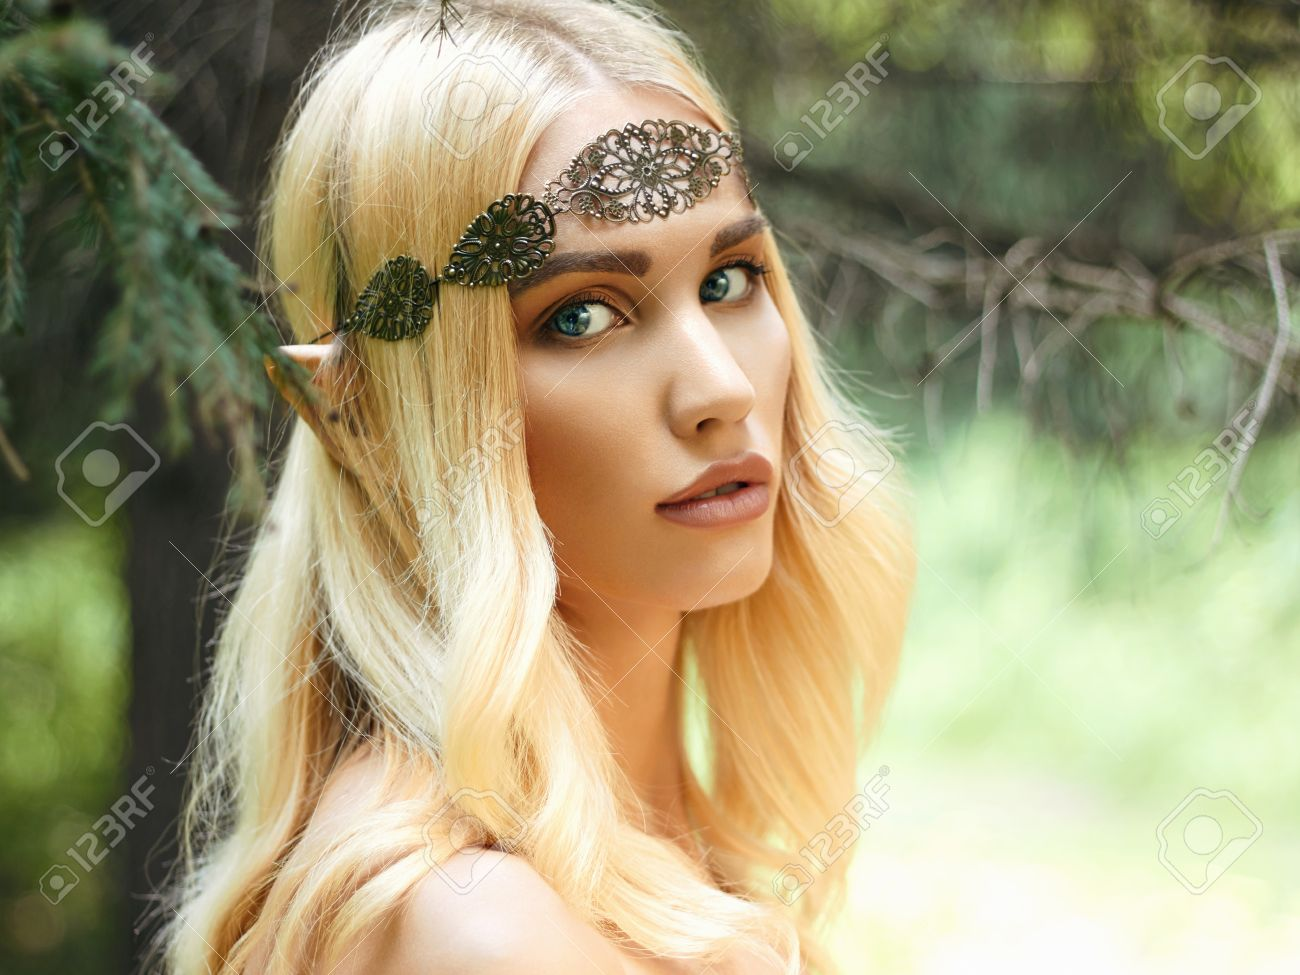 beautiful elf ears fantasy young woman in woods stock photo